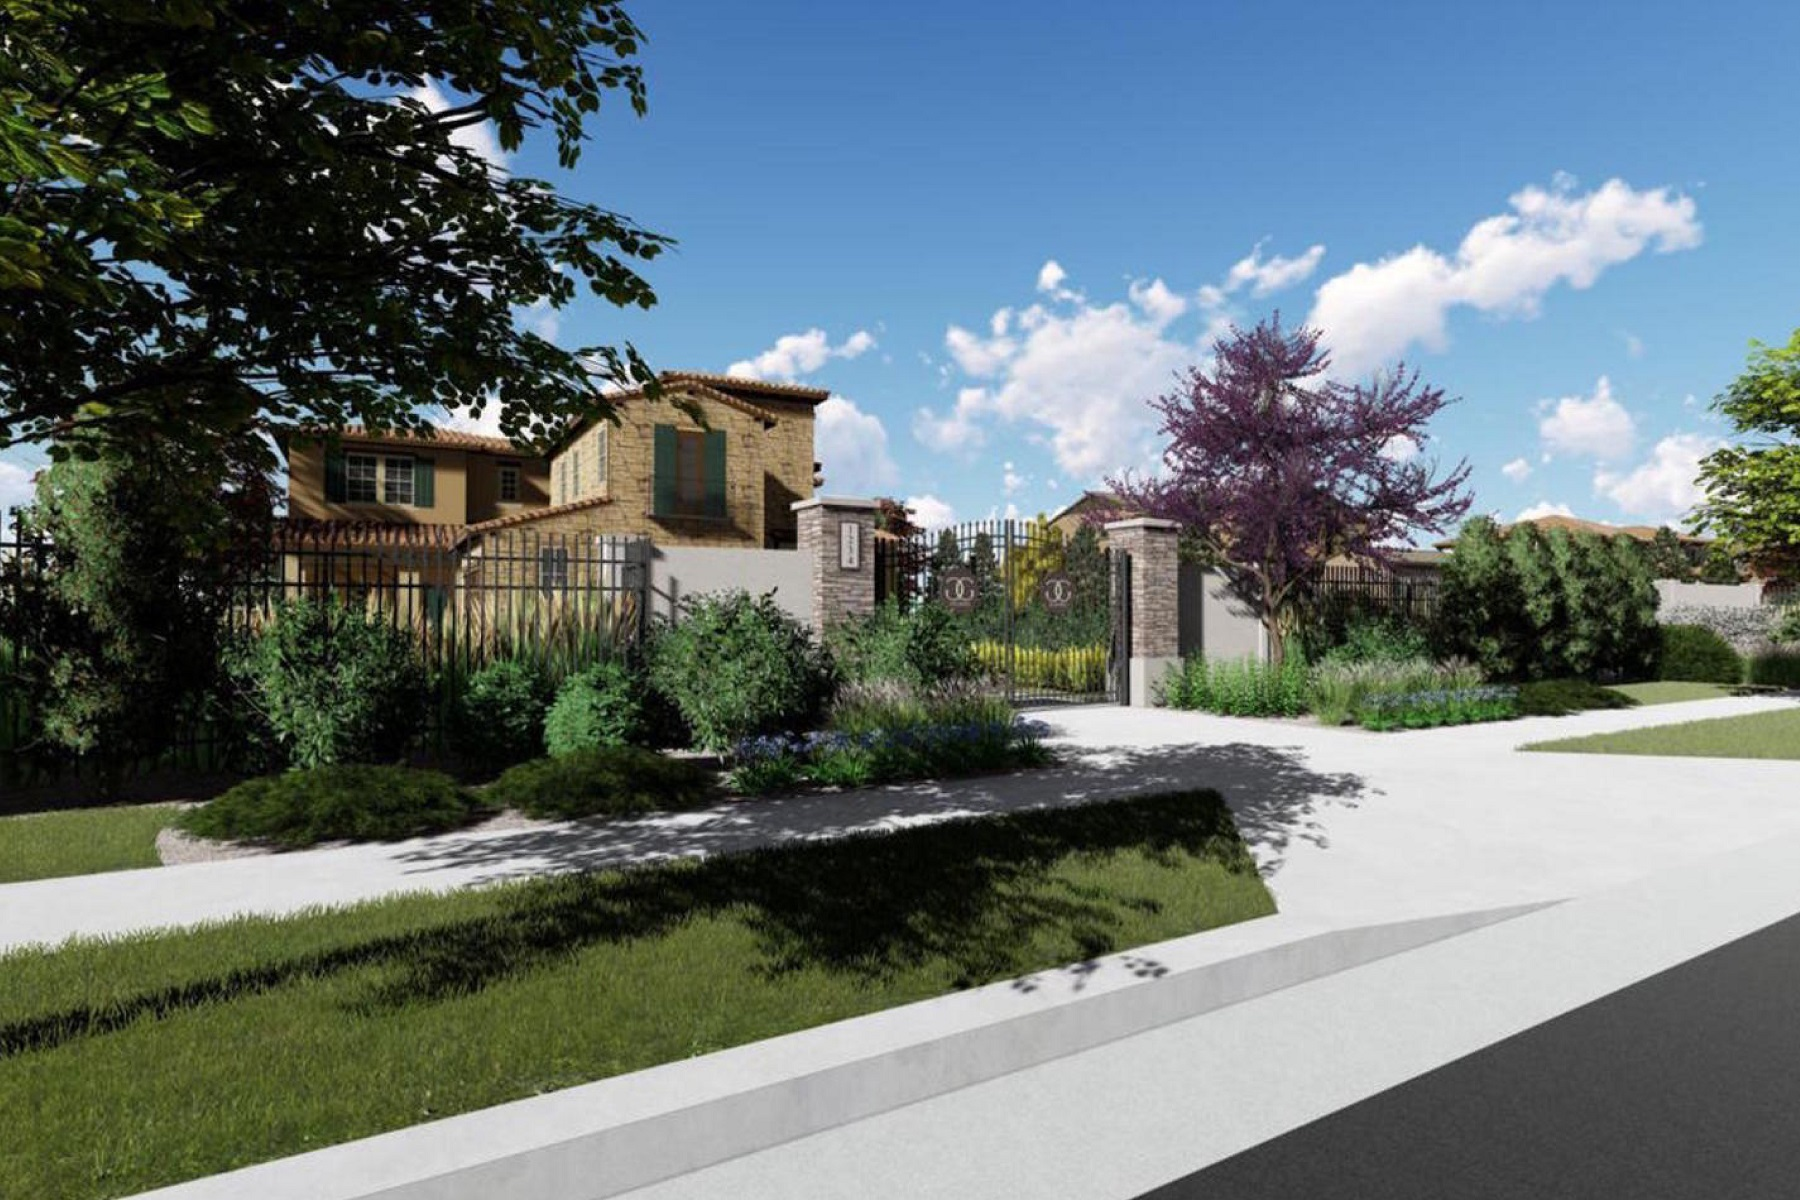 Land for Active at Extraordinary And Very Limited Opportunity 6608 West Adriatic Avenue Lakewood, Colorado 80227 United States